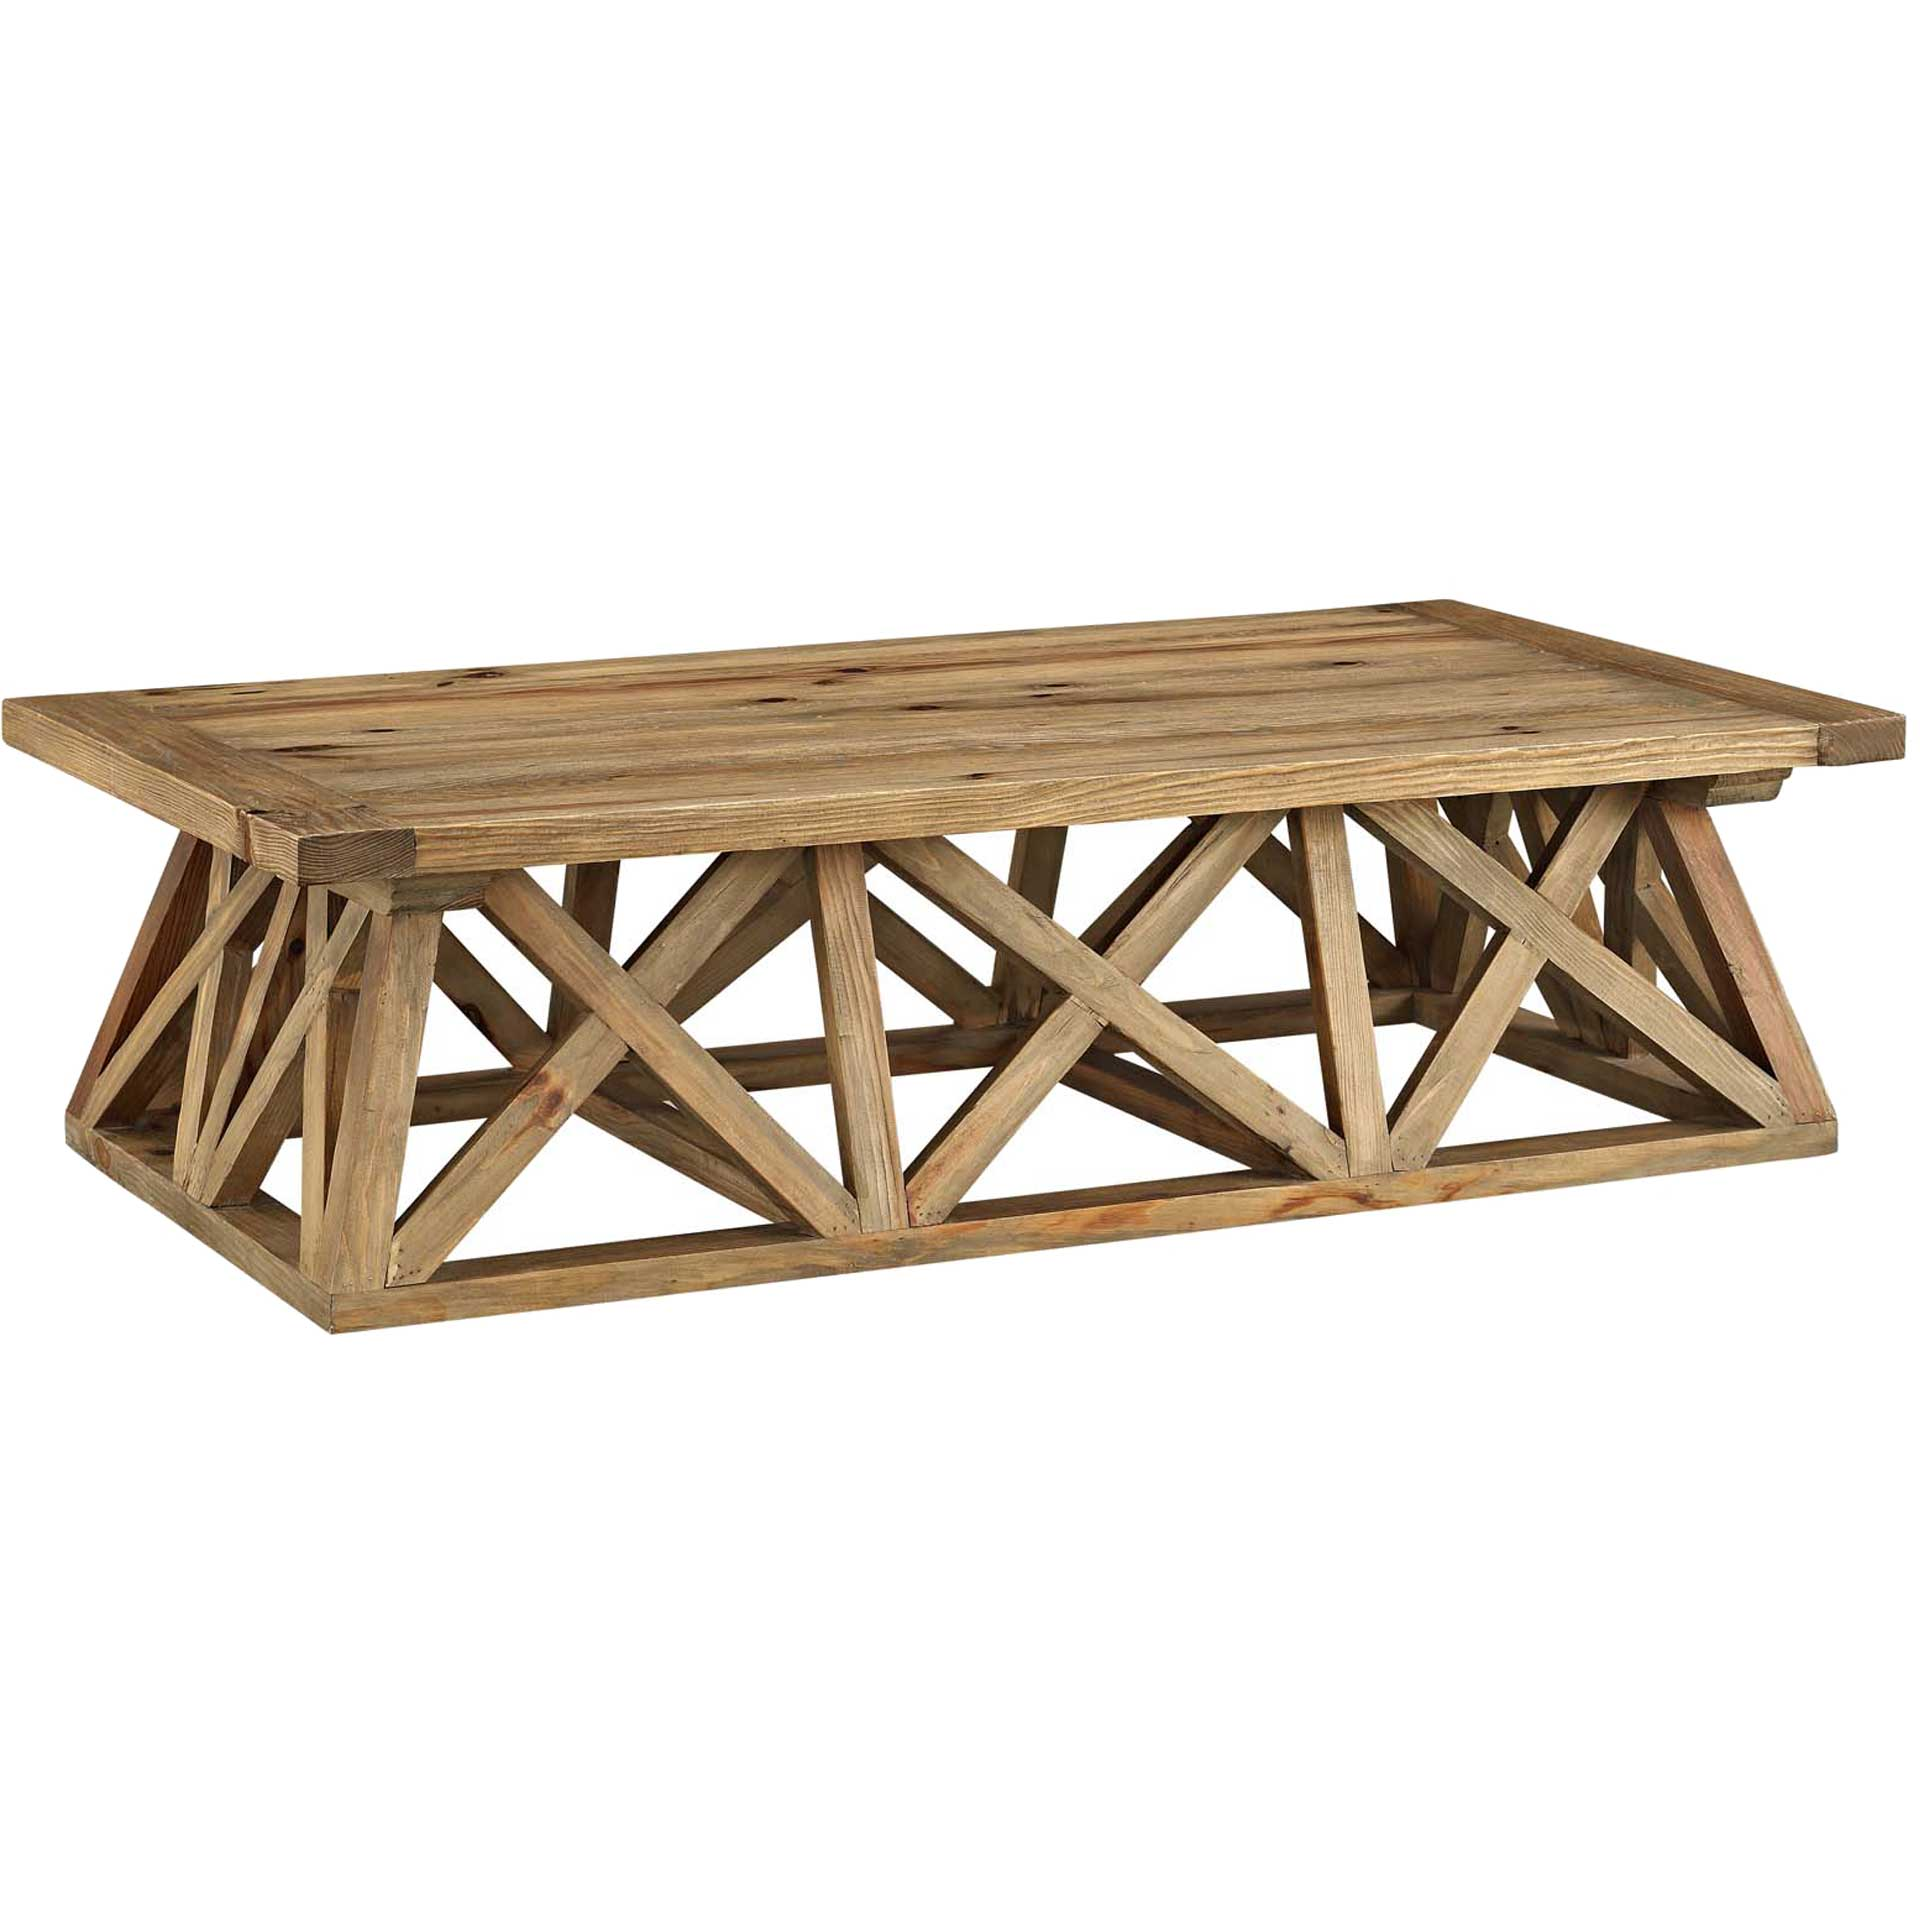 Calera Wood Coffee Table Brown